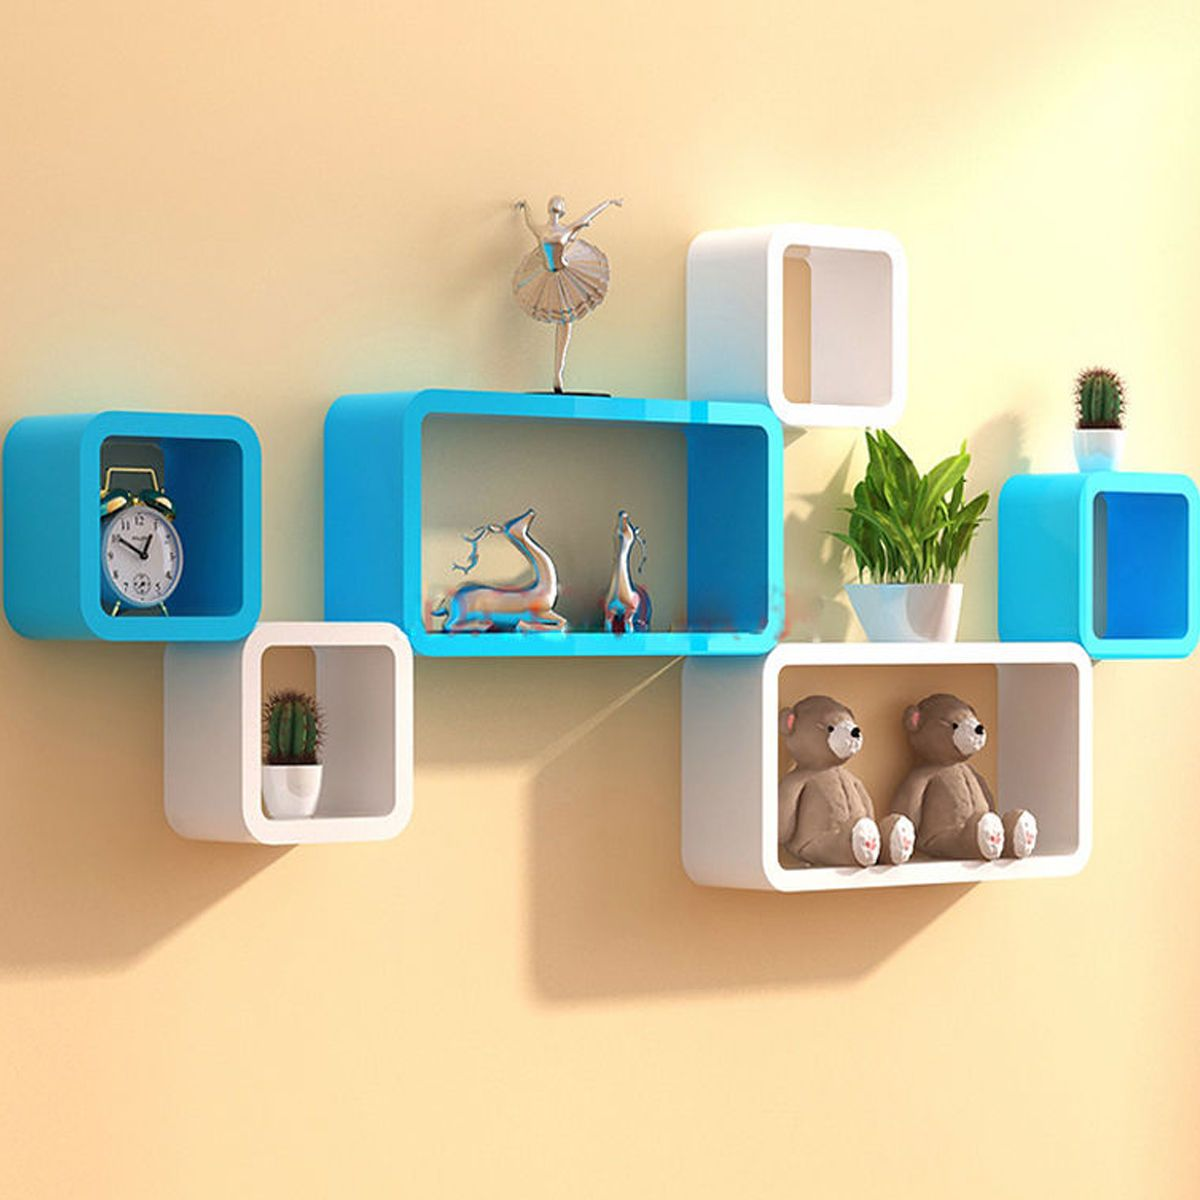 Wall Shelves Cube Shelf White Wooden Book Storage Home Decor Ledge ...